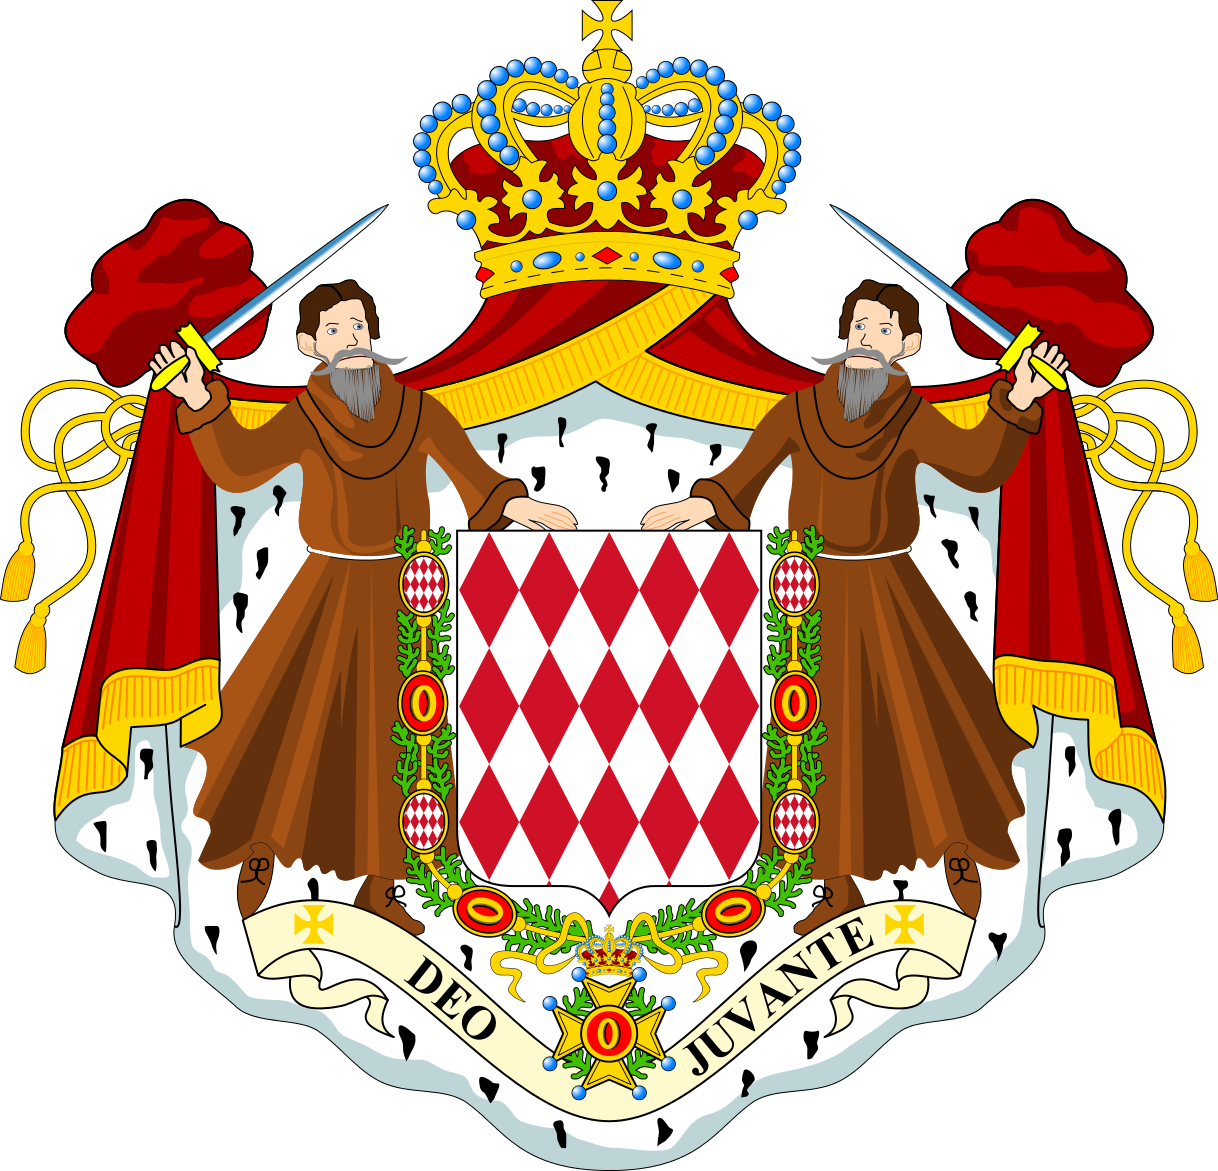 Monaco Coat of Arms Monaco 3A/I2GPT